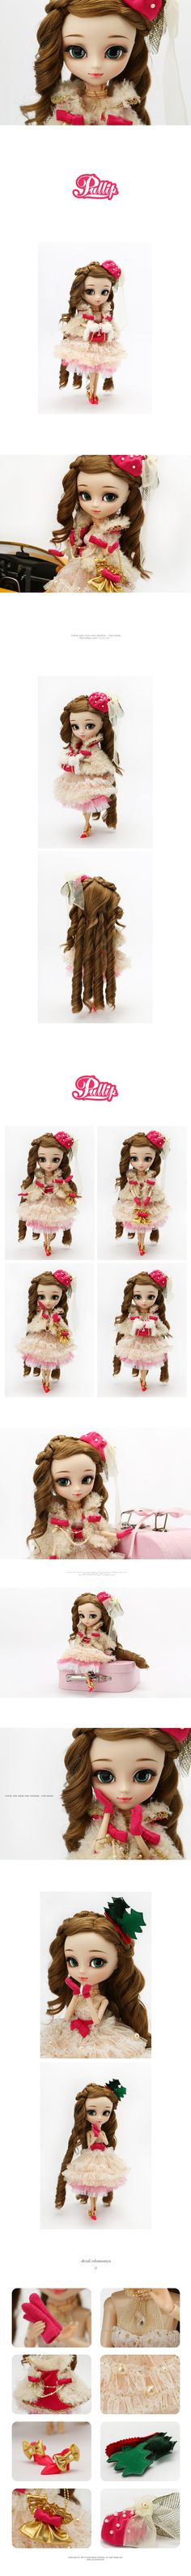 Pullip 'Nanette' - World of Pullip :::::::::::::::::::::::::